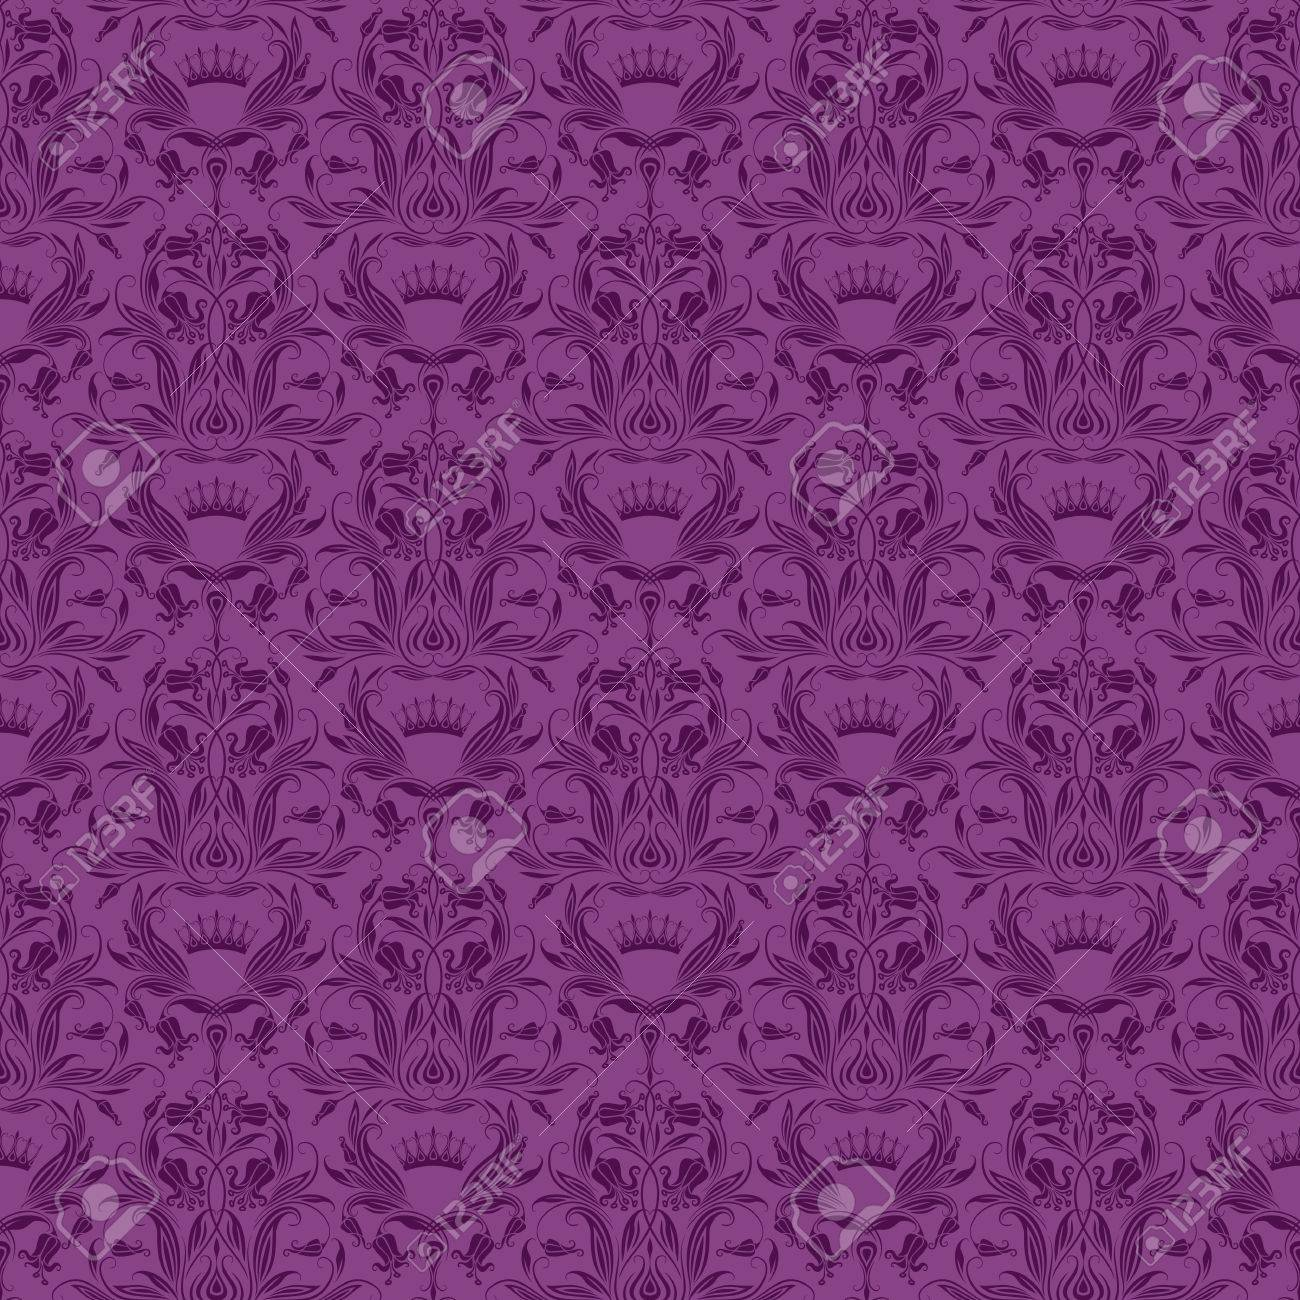 Damask Seamless Floral Pattern Royal Wallpaper Ornaments On A Purple Background Vector